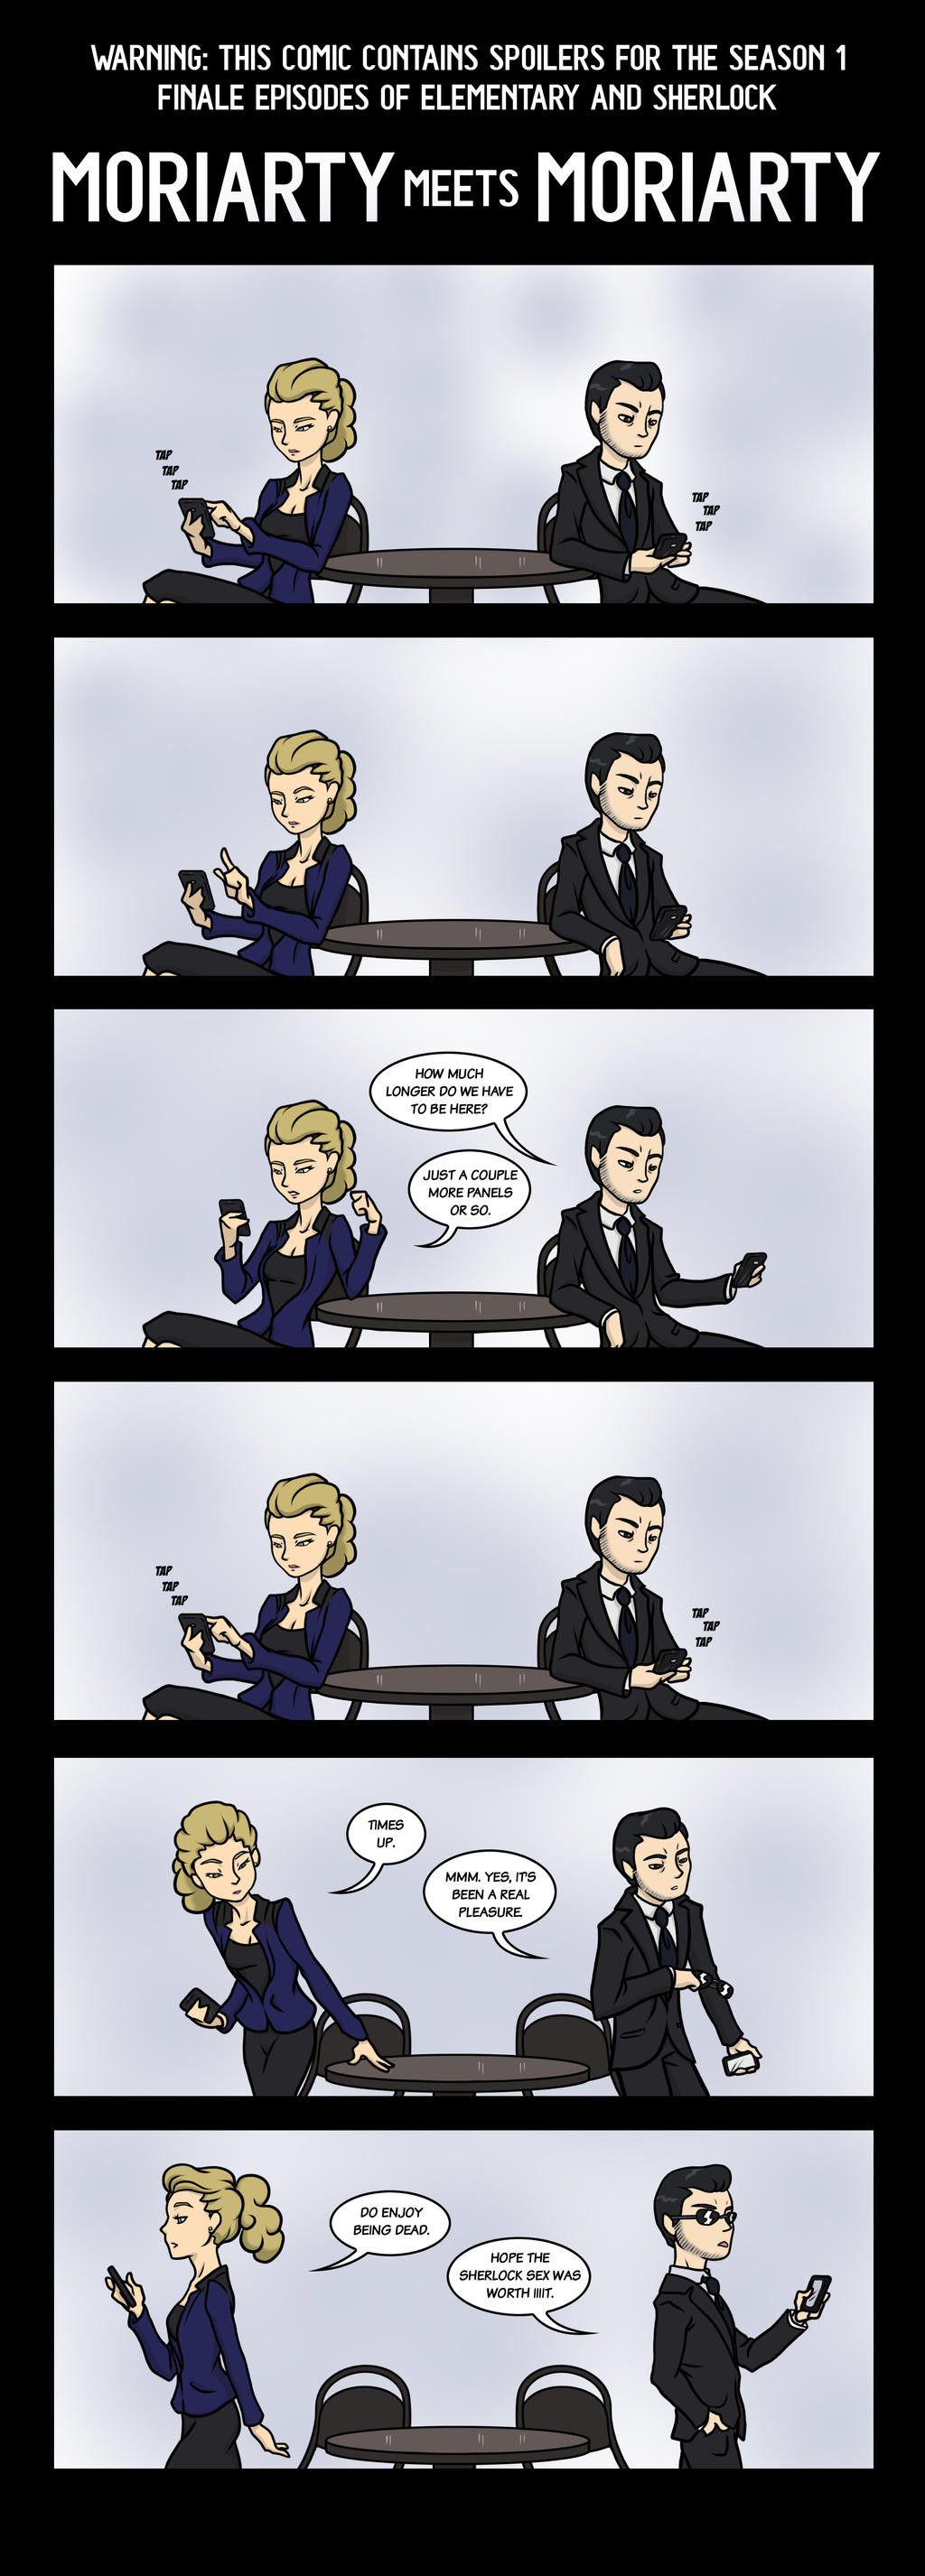 sherlock and moriarty meet